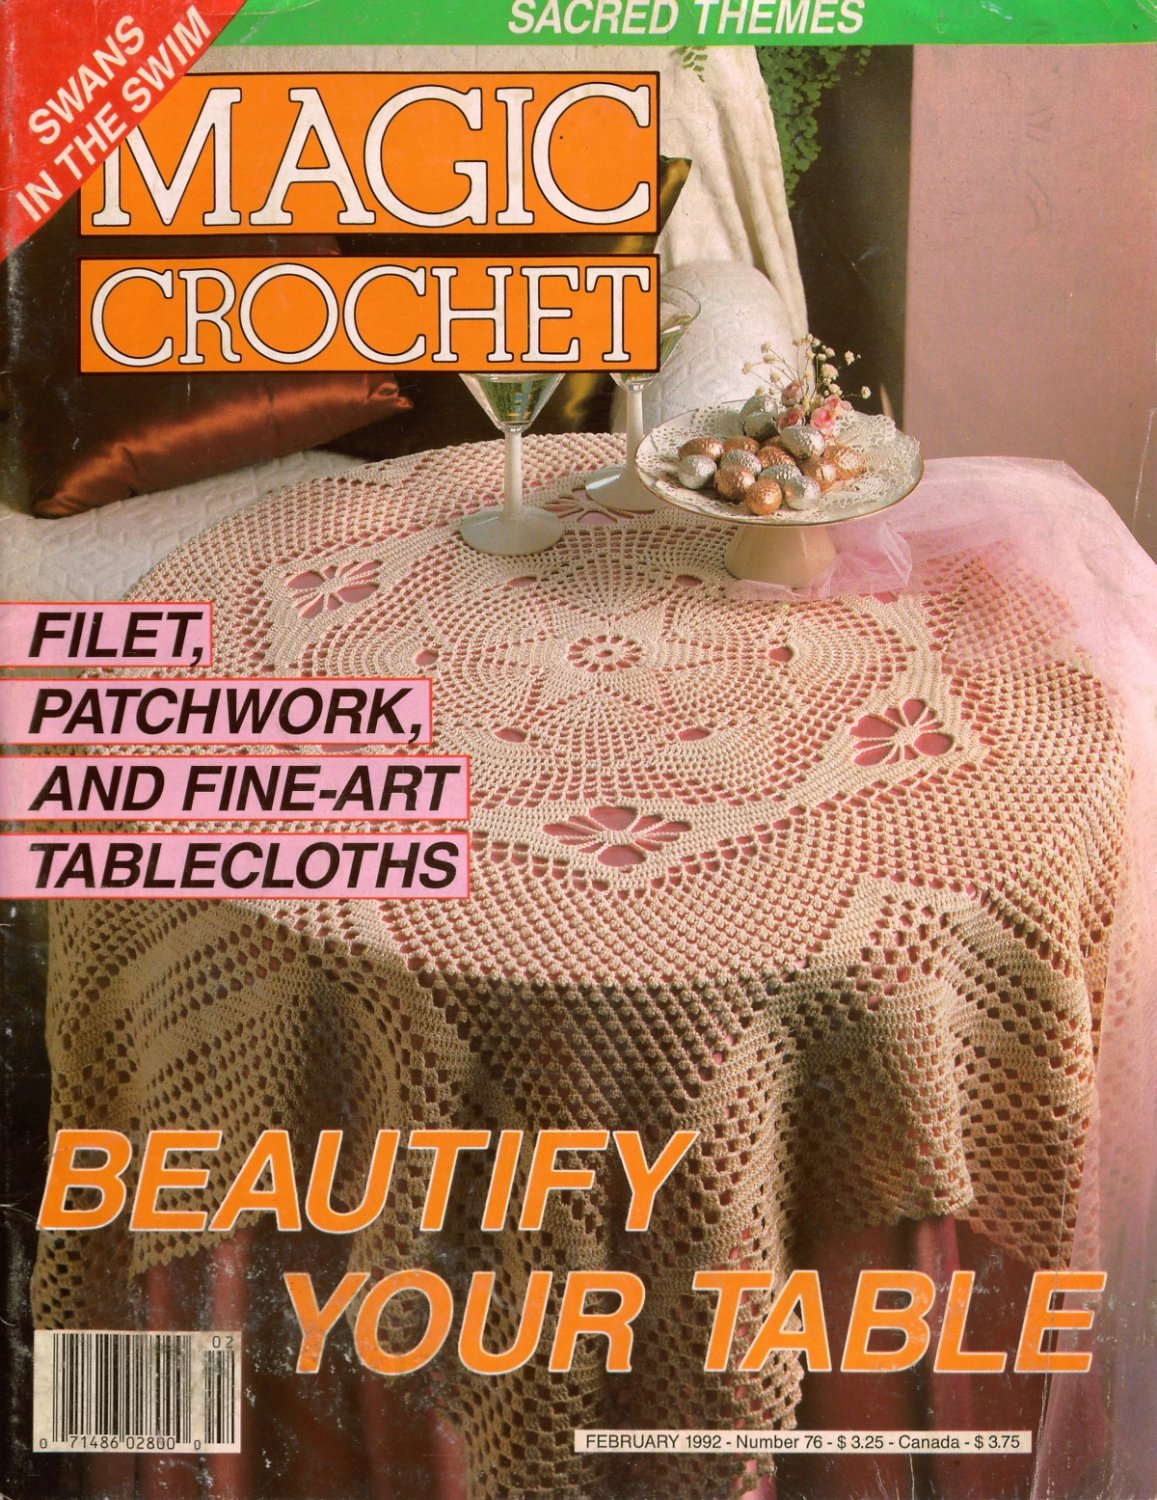 Magic Crochet Magazine : Magic Crochet Magazine #76 Feb 1992 Patterns Bedspread Tablecloth ...